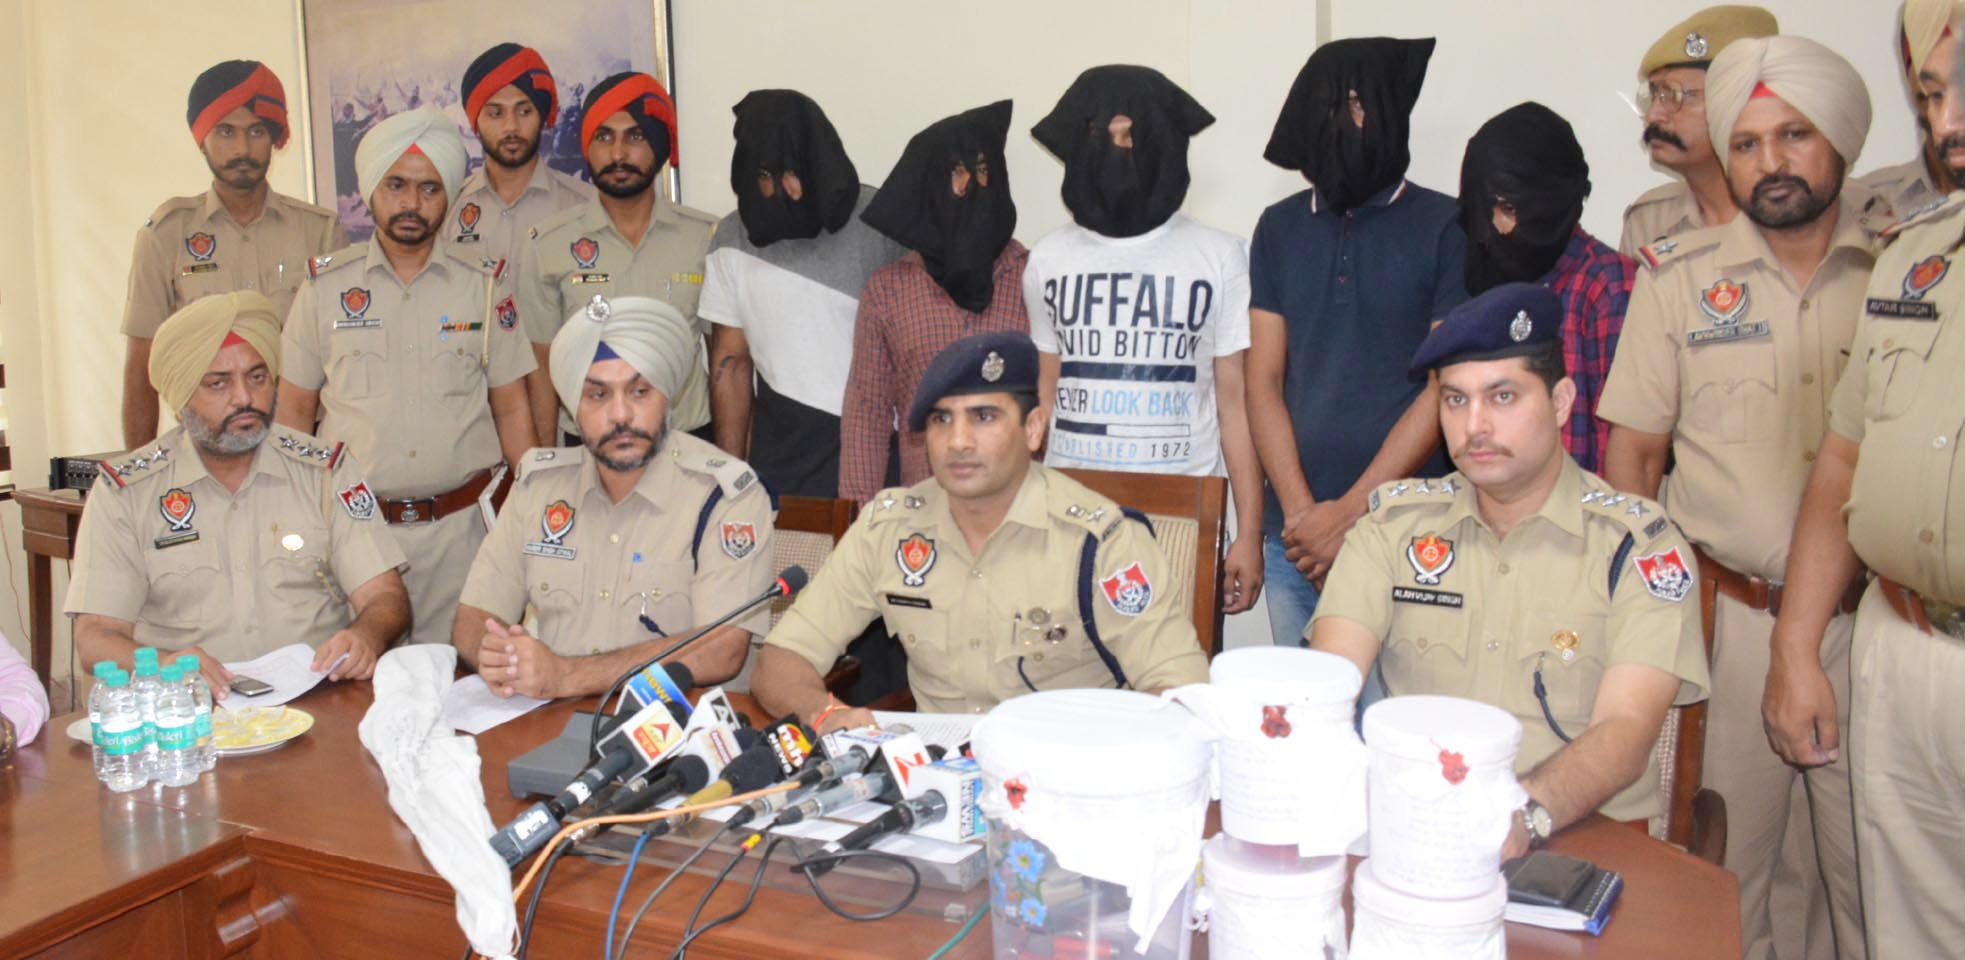 Busted, Interstate Gang, Arrested, Police, Weapons, Punjab